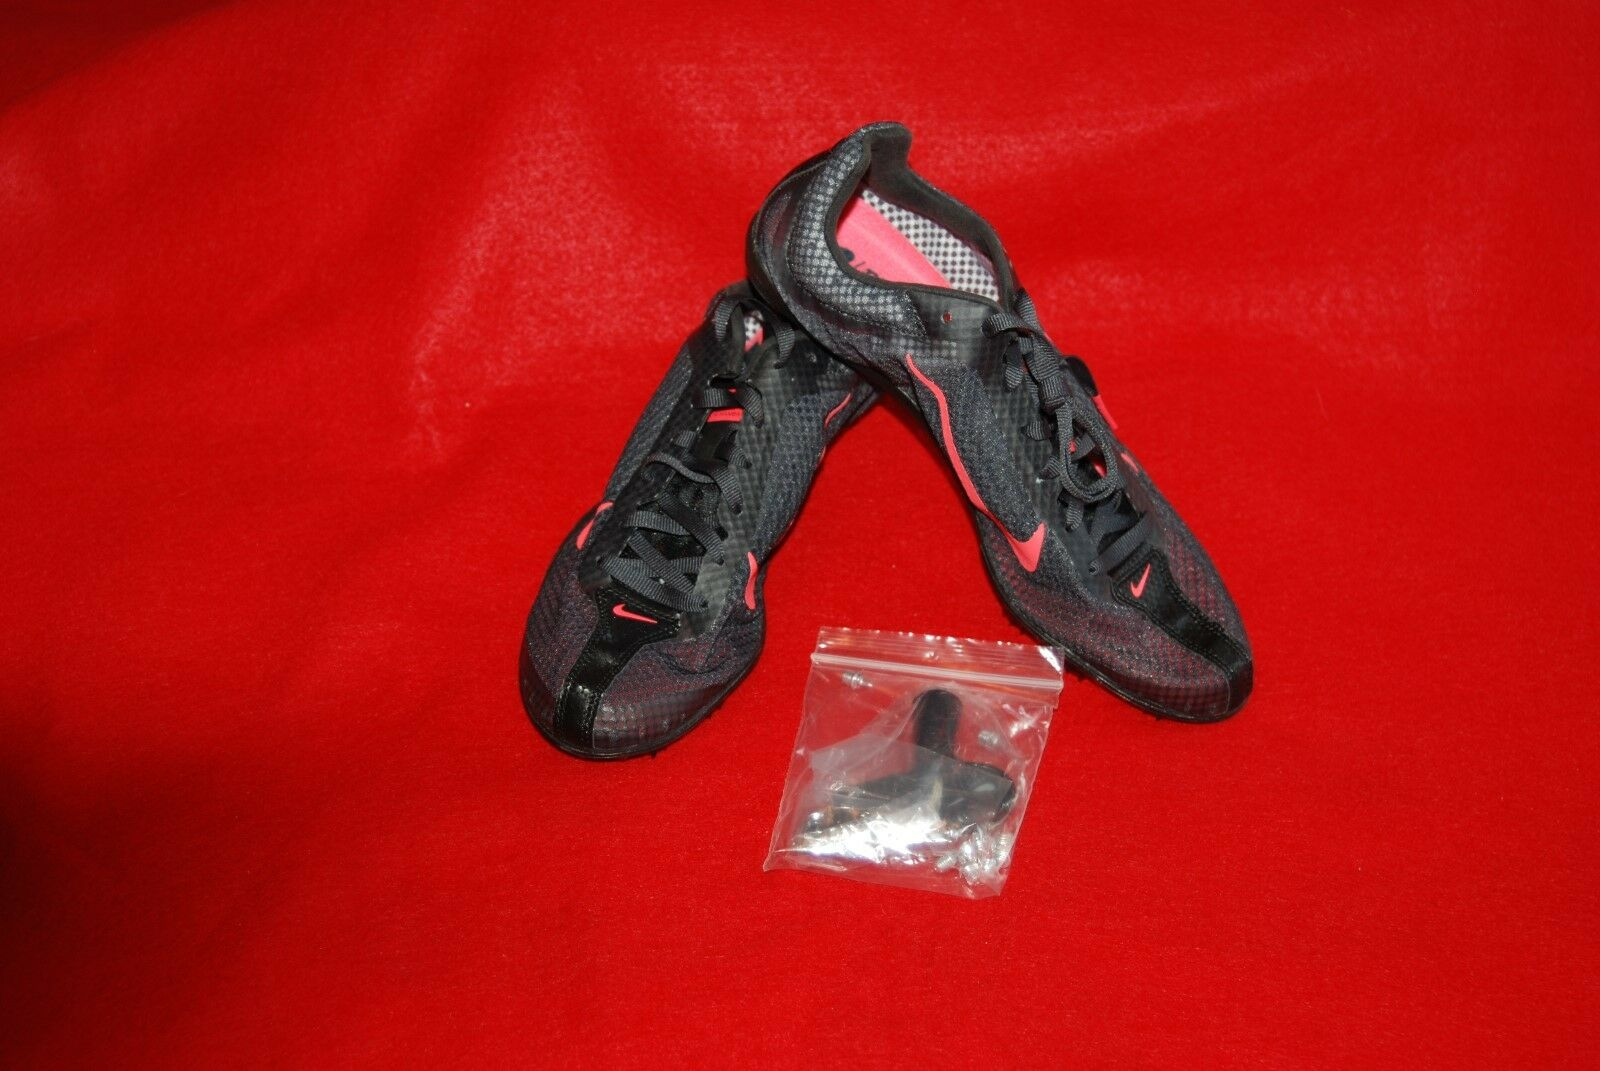 Nike Mens Zoom Mamba 2 Track Spikes Unisex w Spikes Tool Bag  487345-060 Size 7